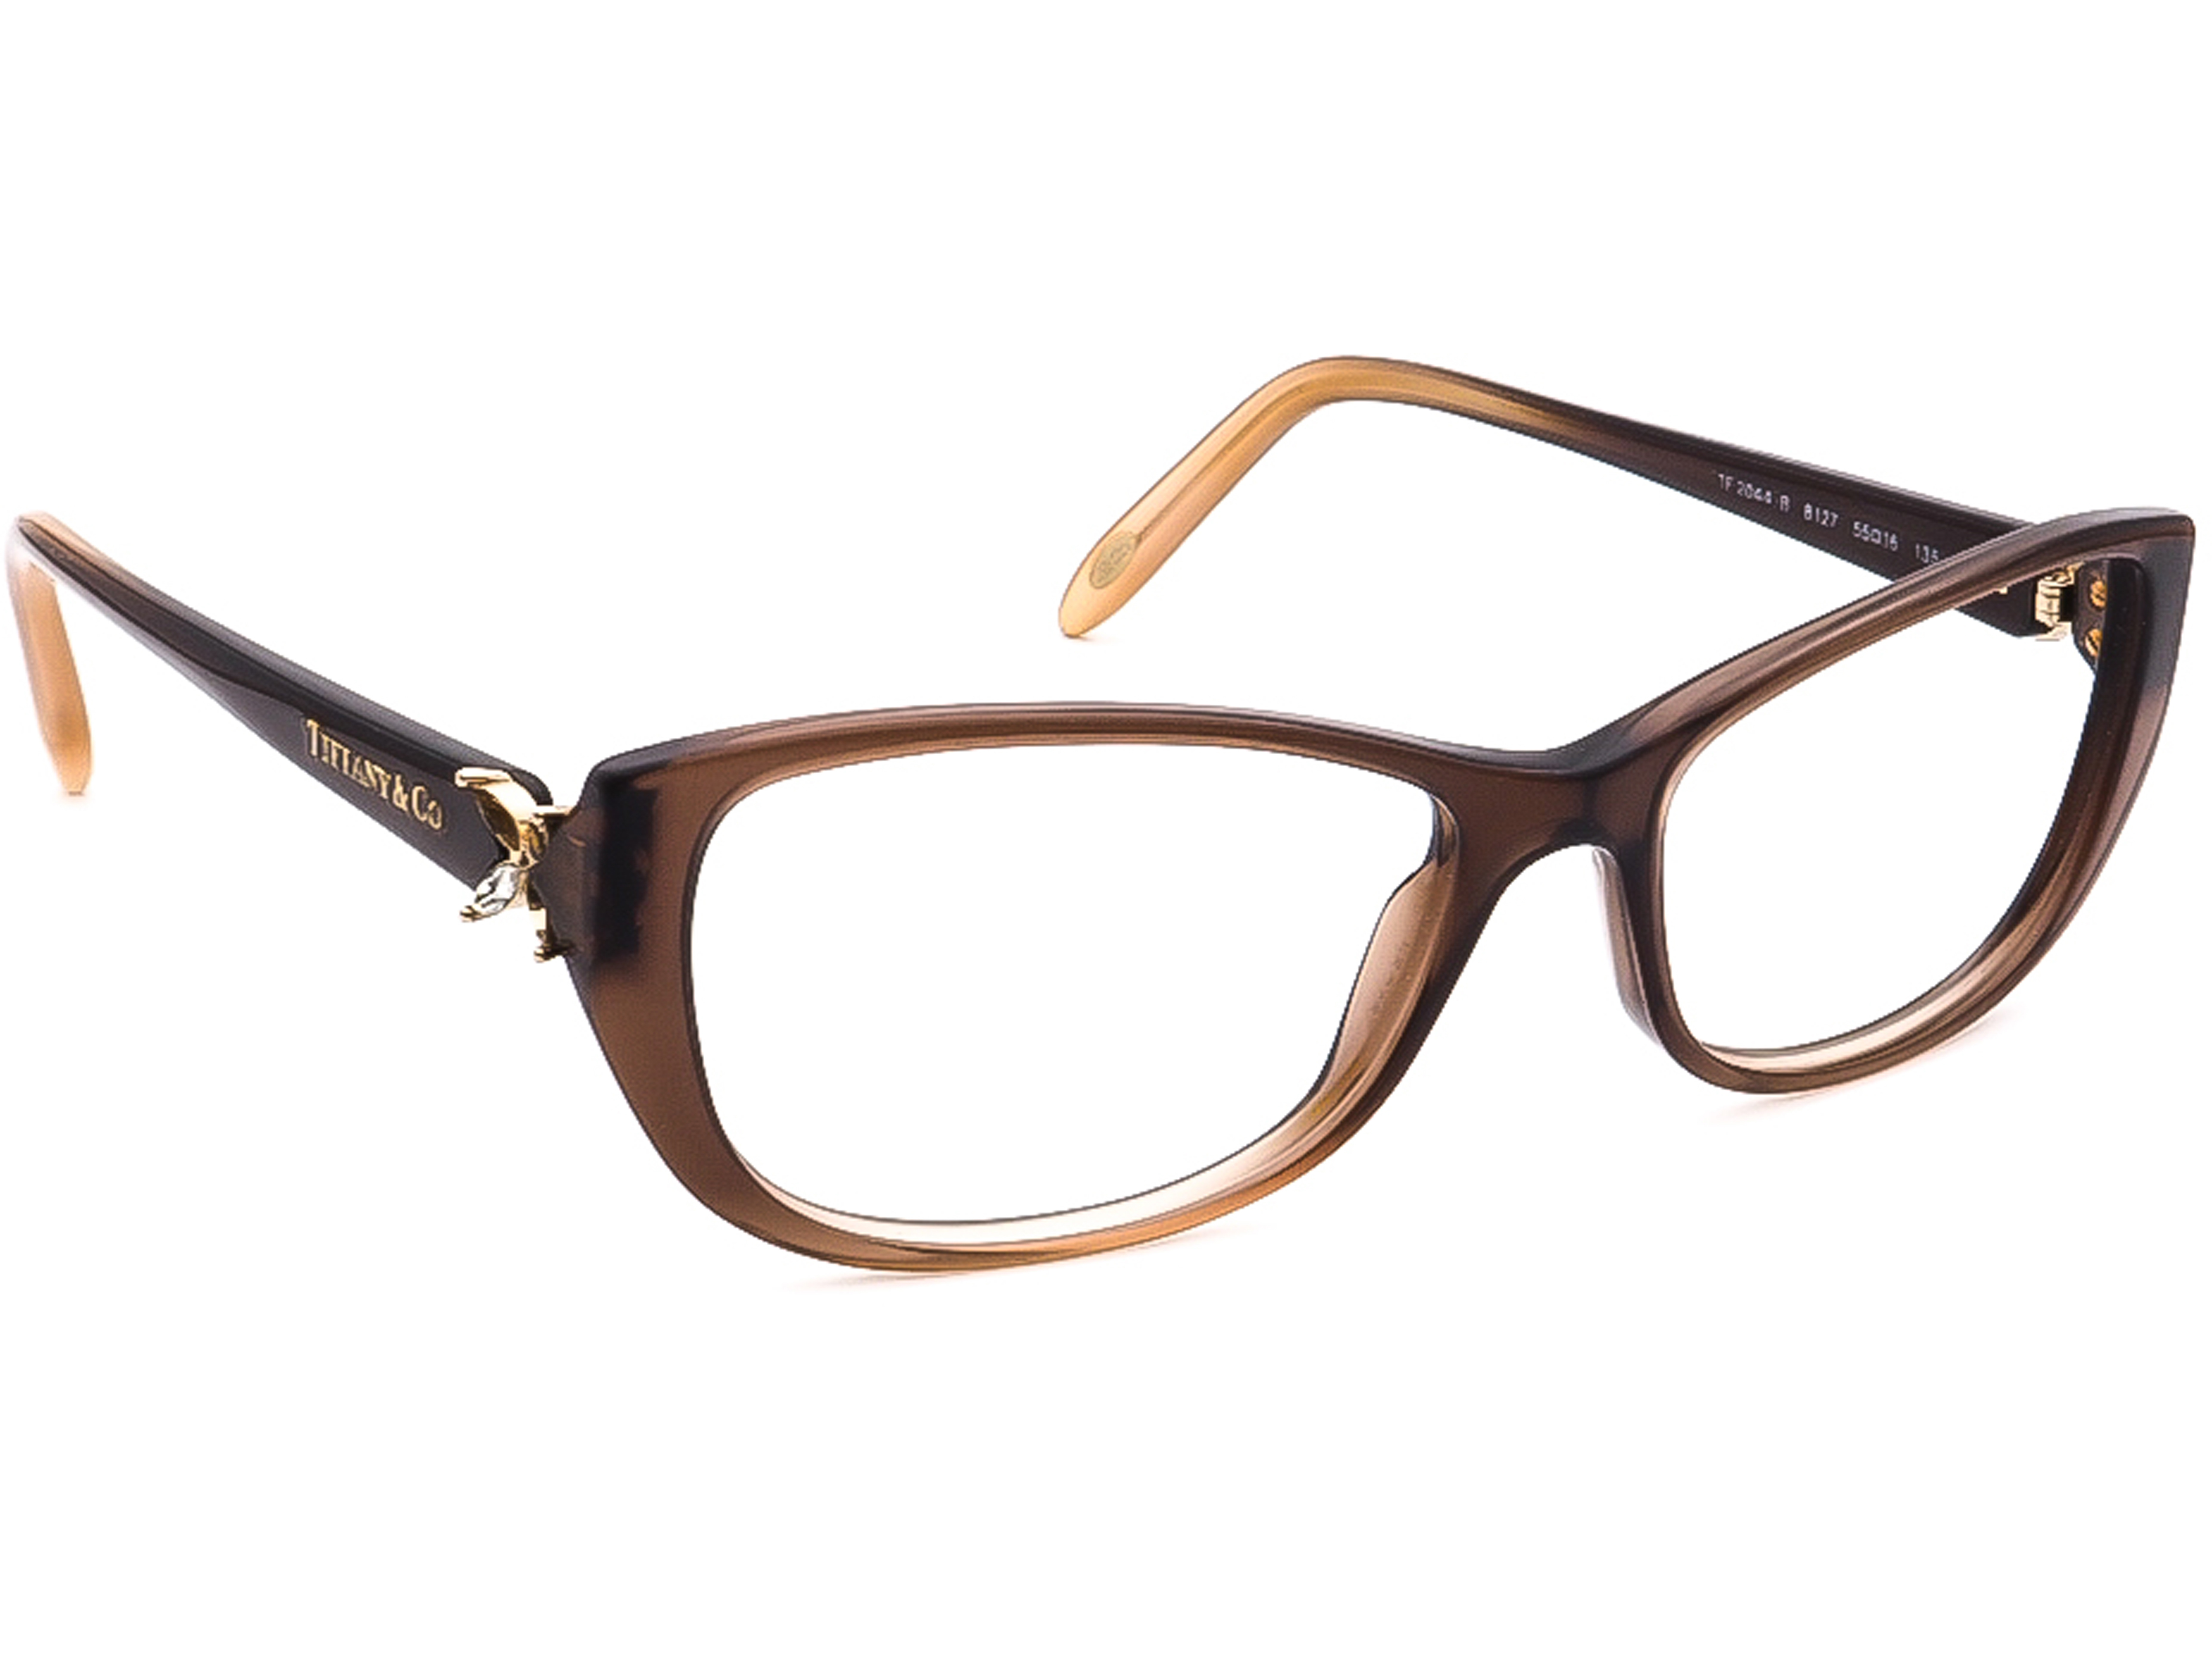 Tiffany & Co. TF 2044-B 8127 Eyeglasses